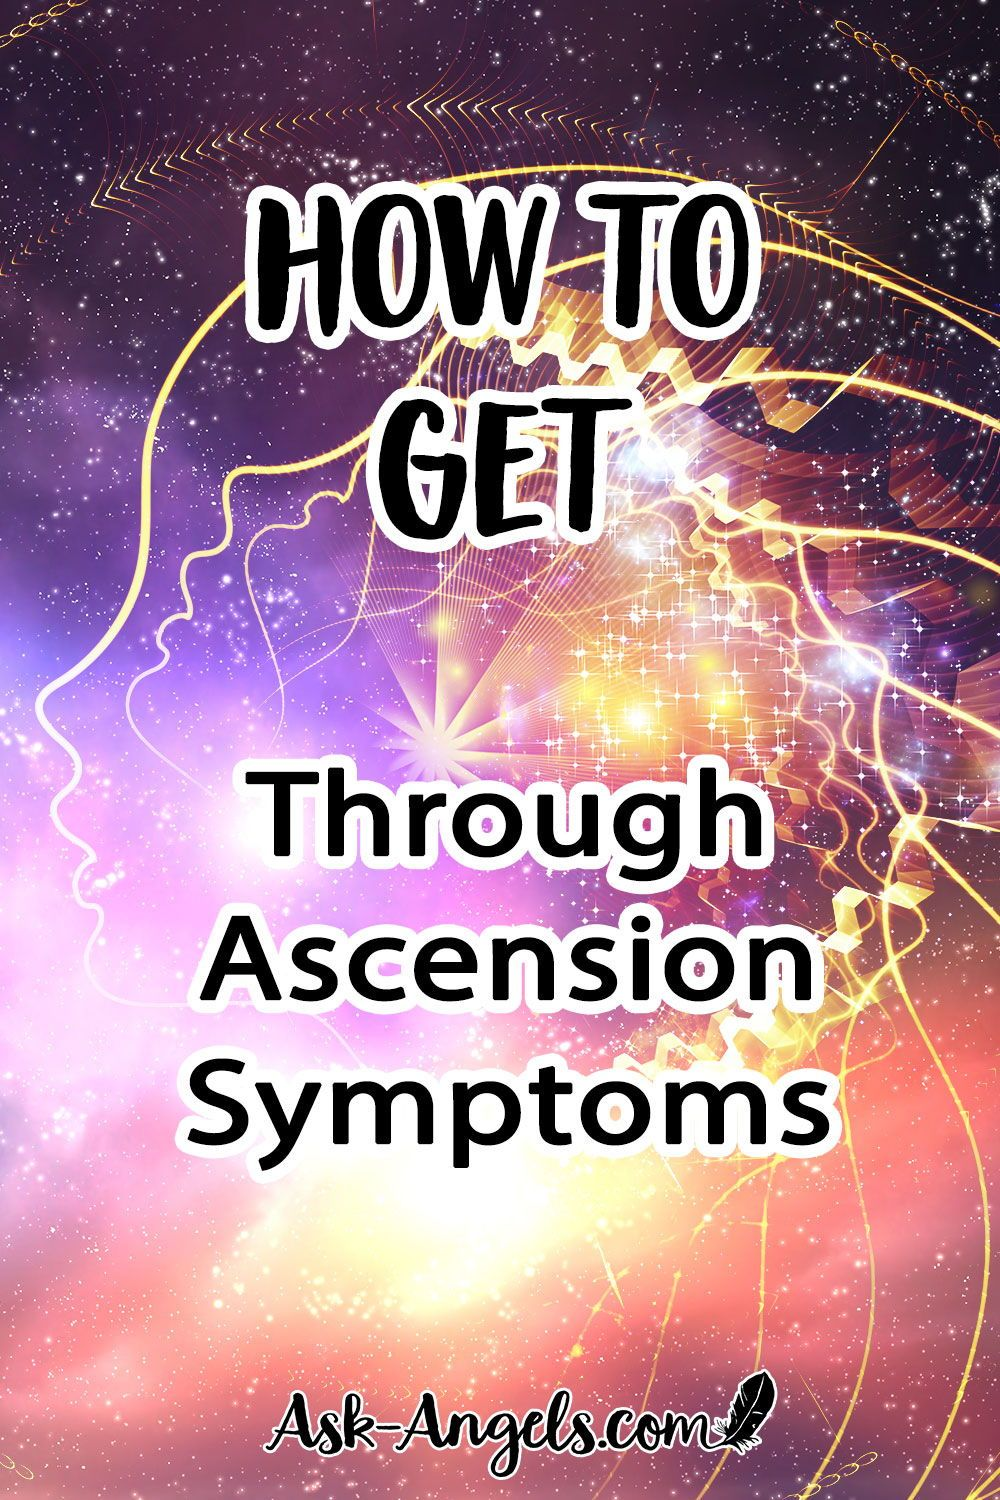 9 Spiritual Ascension Symptoms and How to Keep Your Sanity [Guide]